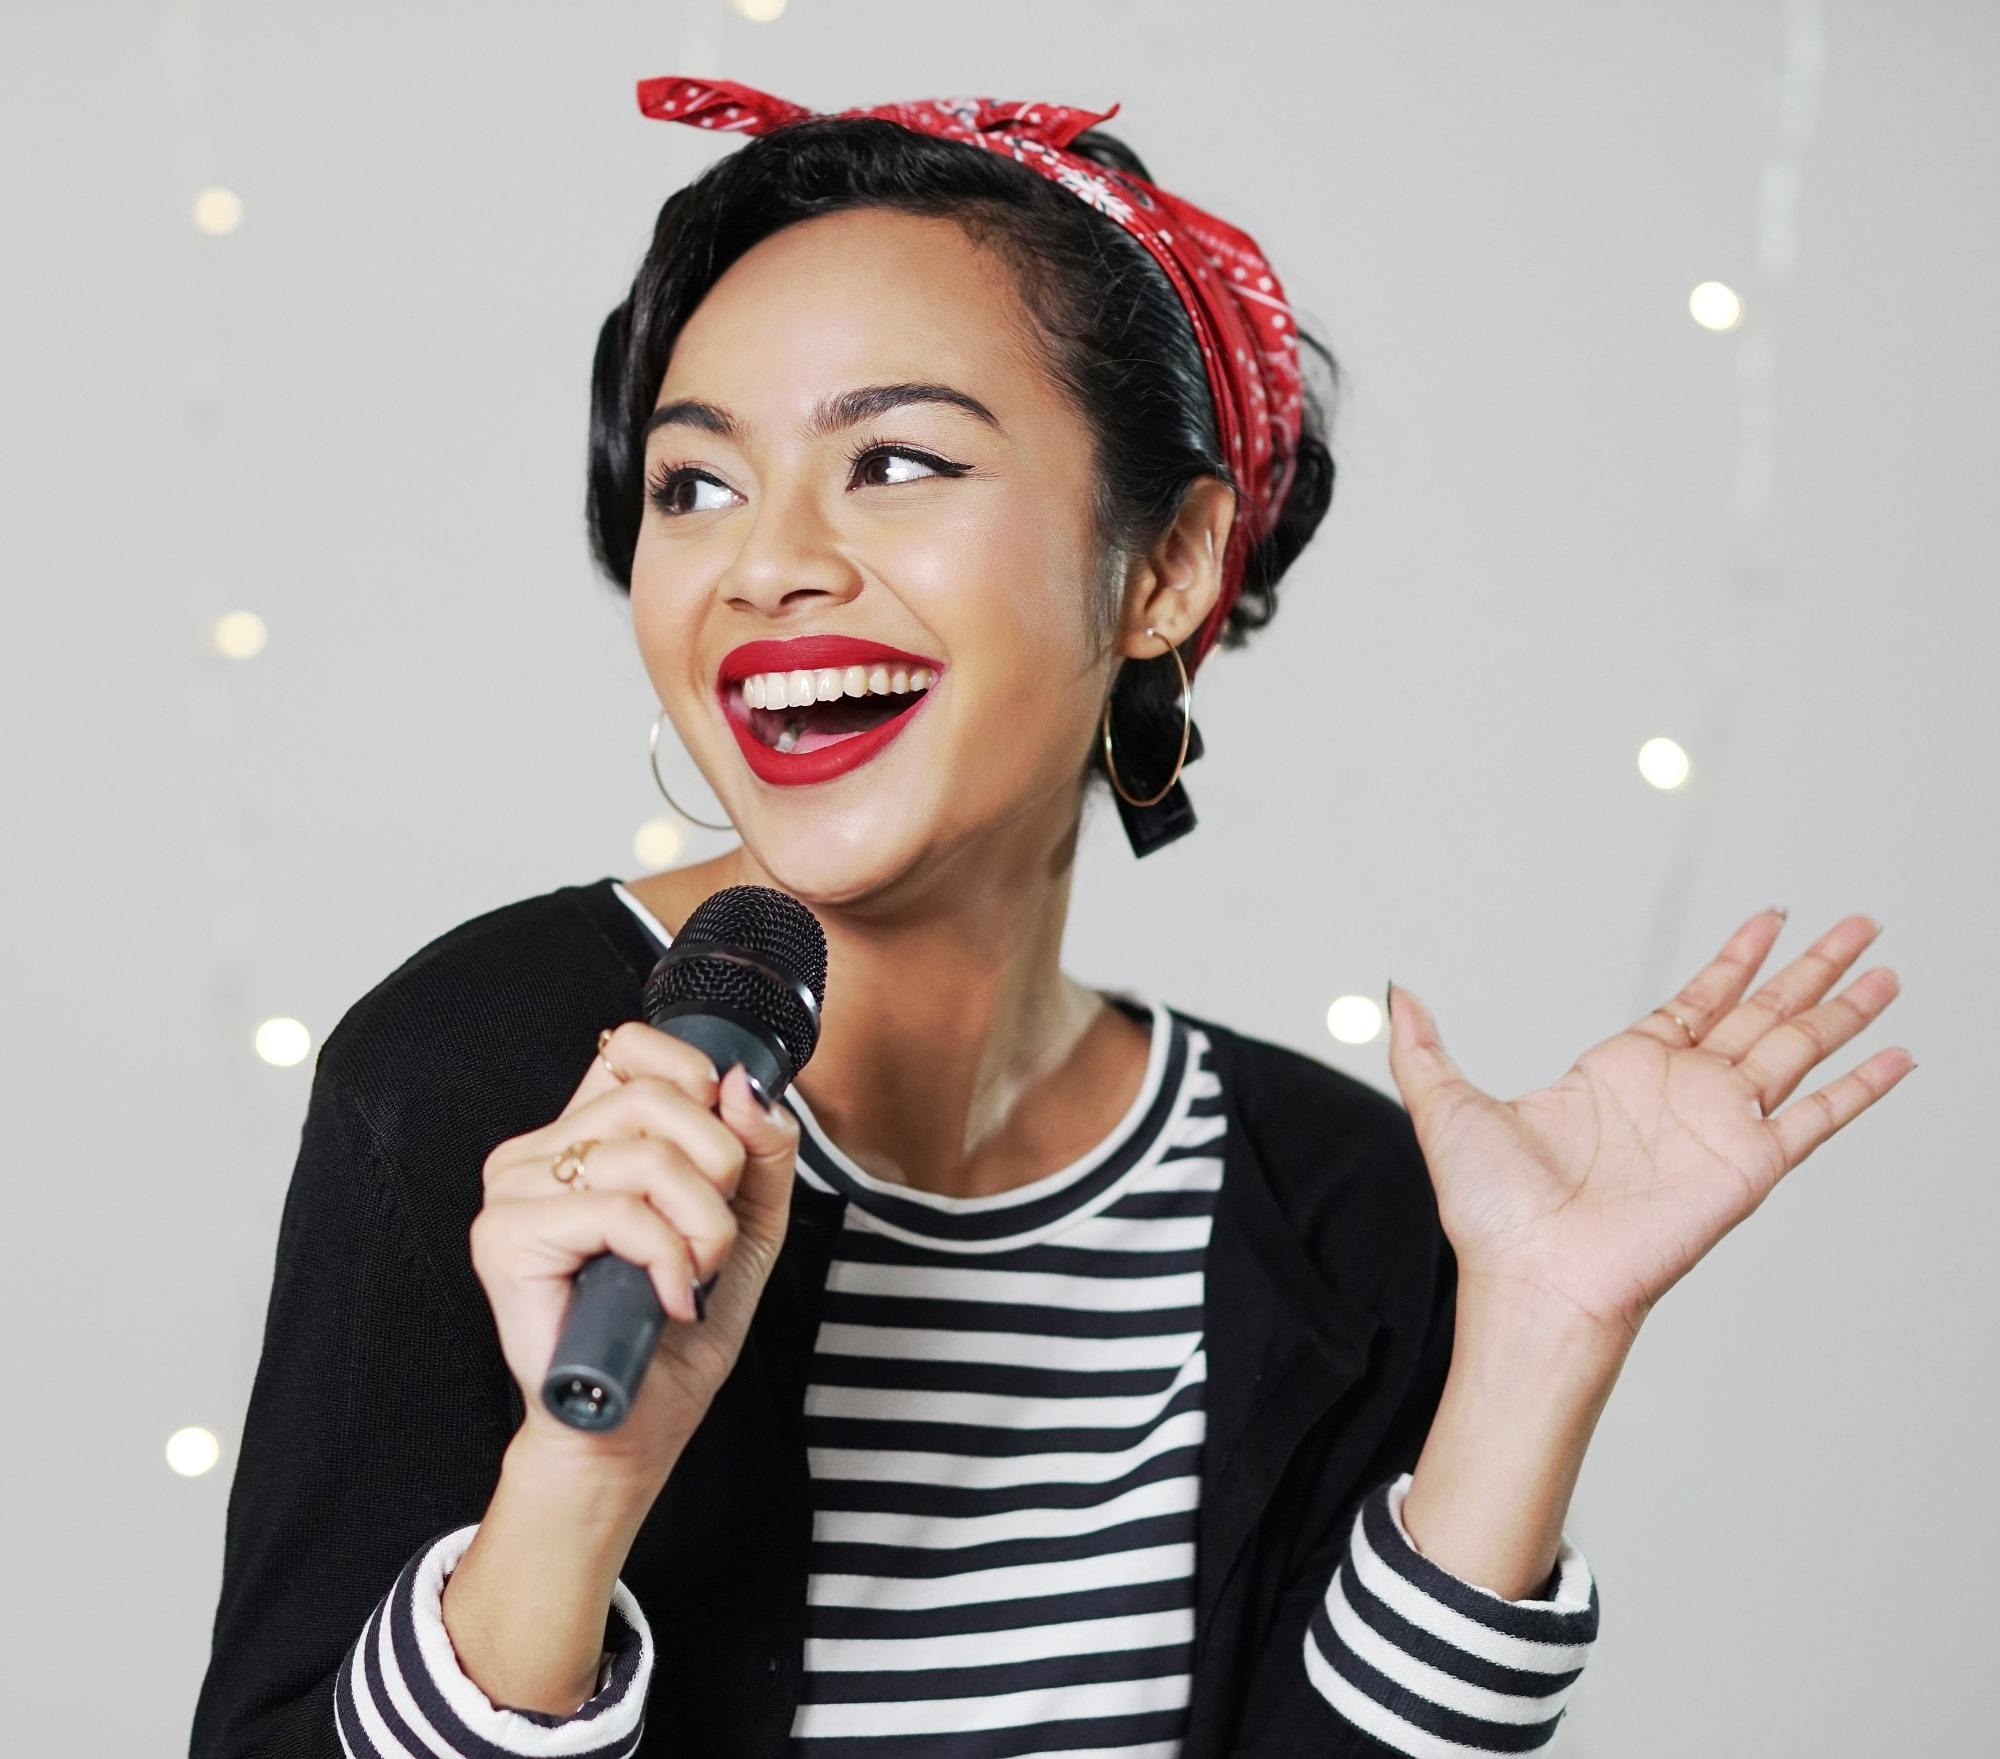 Pin up hair: Closeup shot of an Asian woman with pin up hair singing with fairy lights in the background